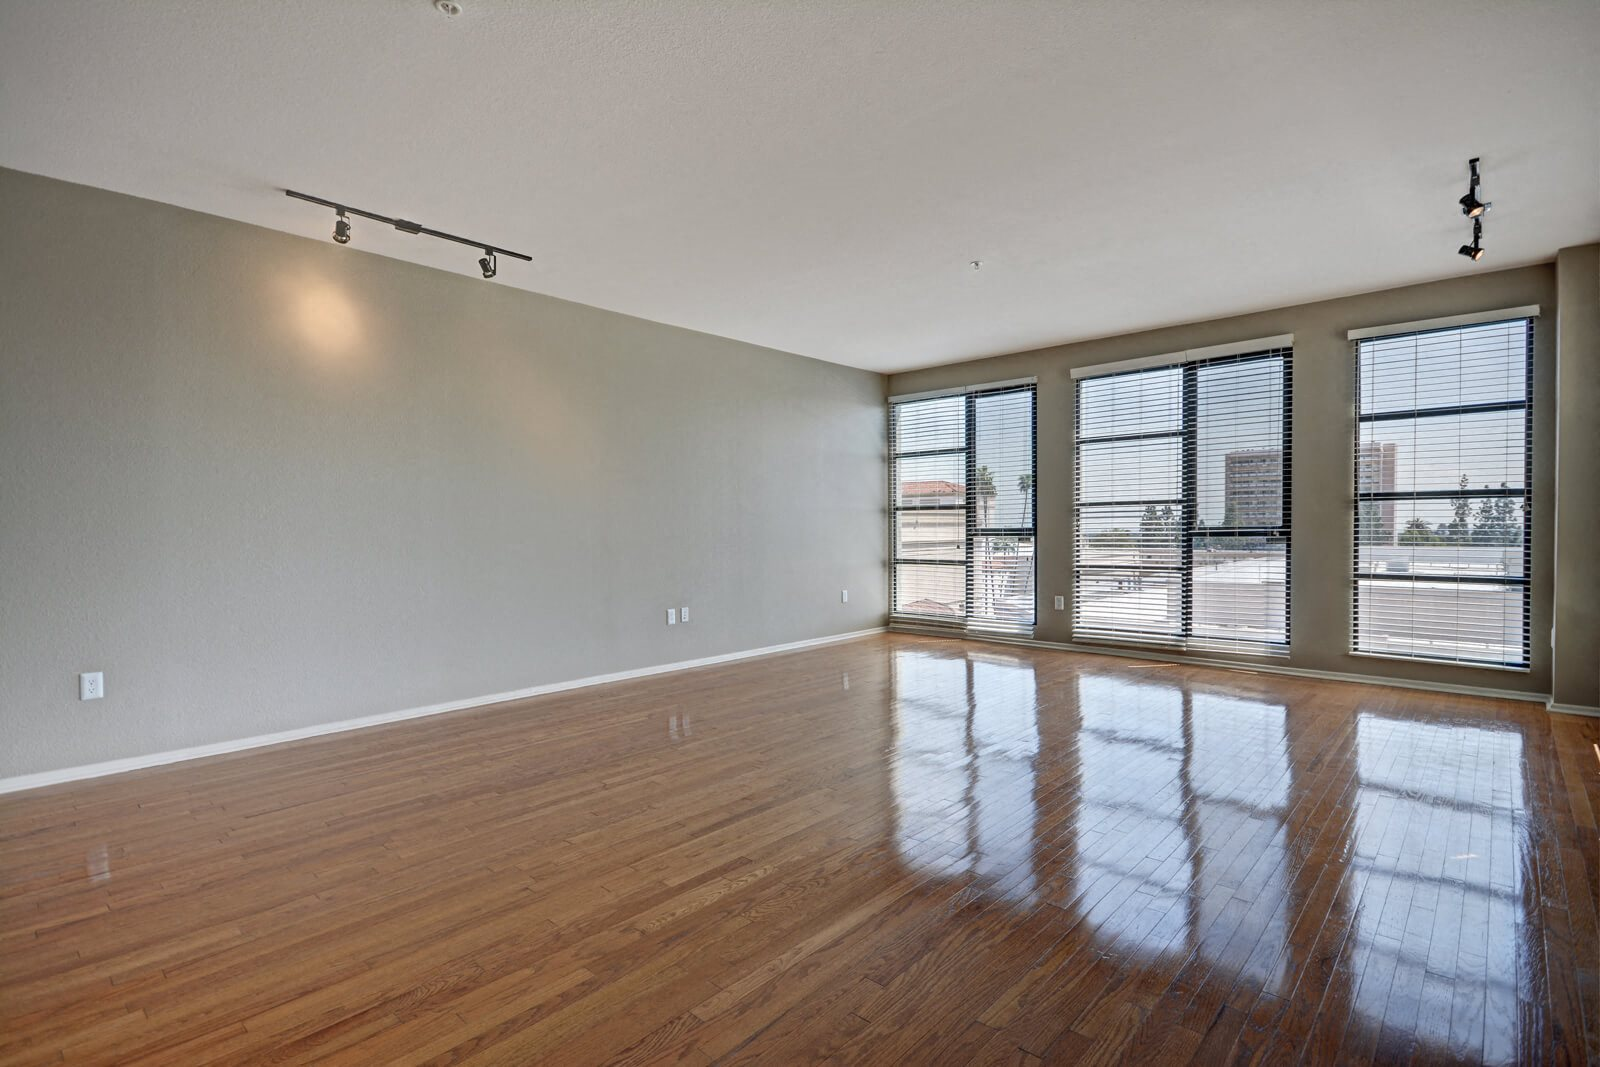 Hardwood, Concrete, or Carpeted Flooring Available at Terraces at Paseo Colorado, 375 E. Green Street, Pasadena